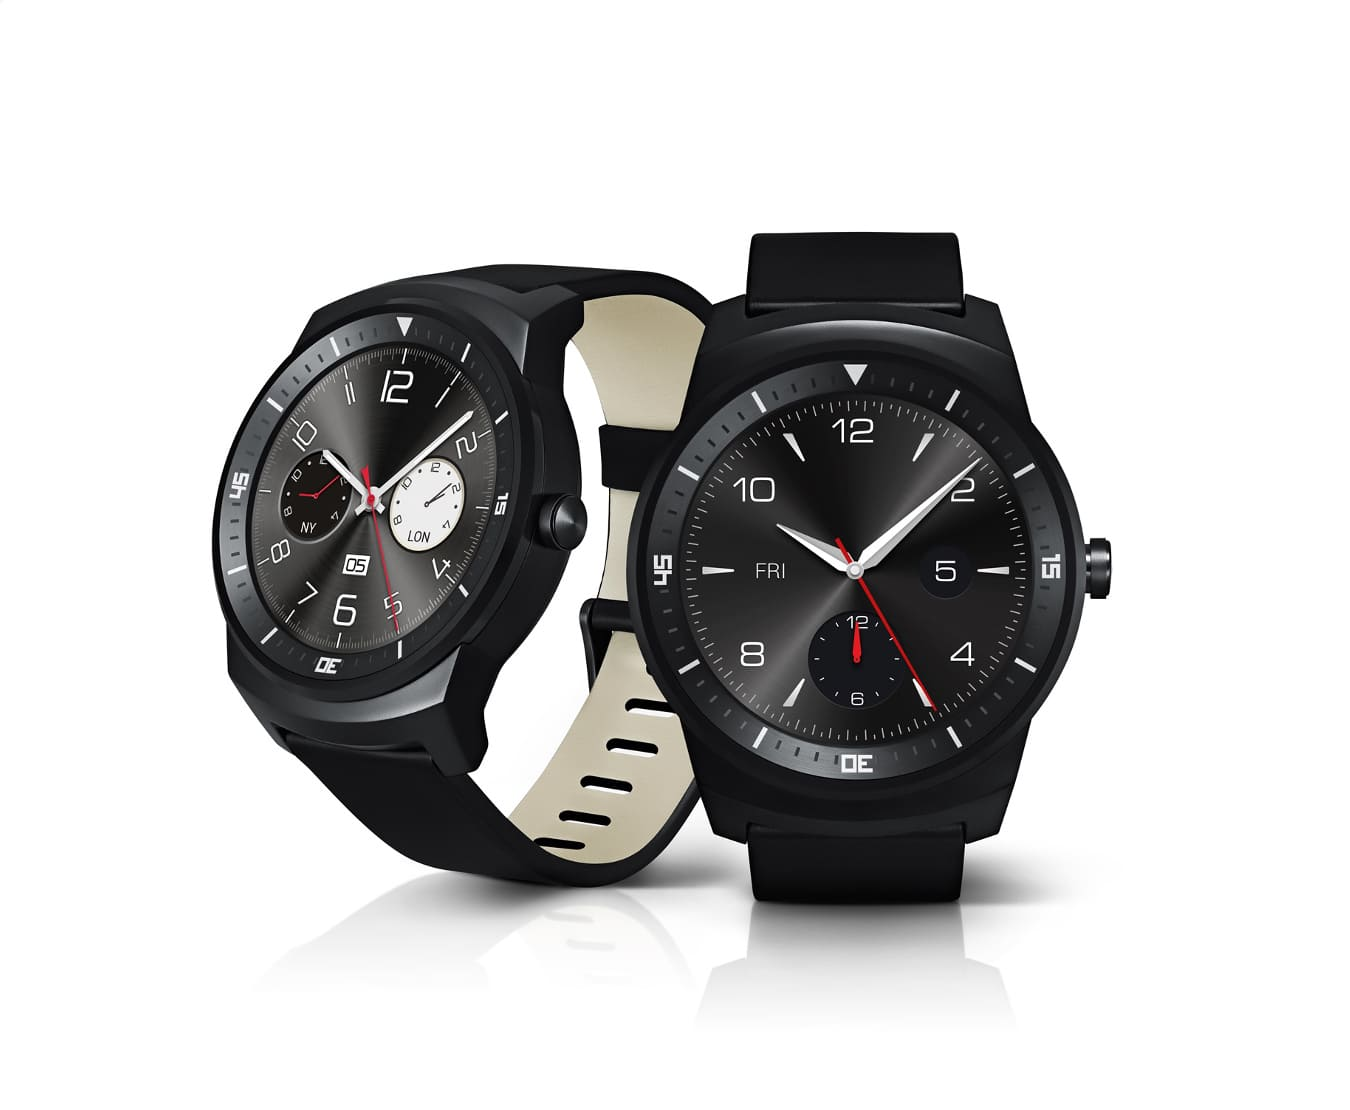 LG G Watch R $140 AT&T